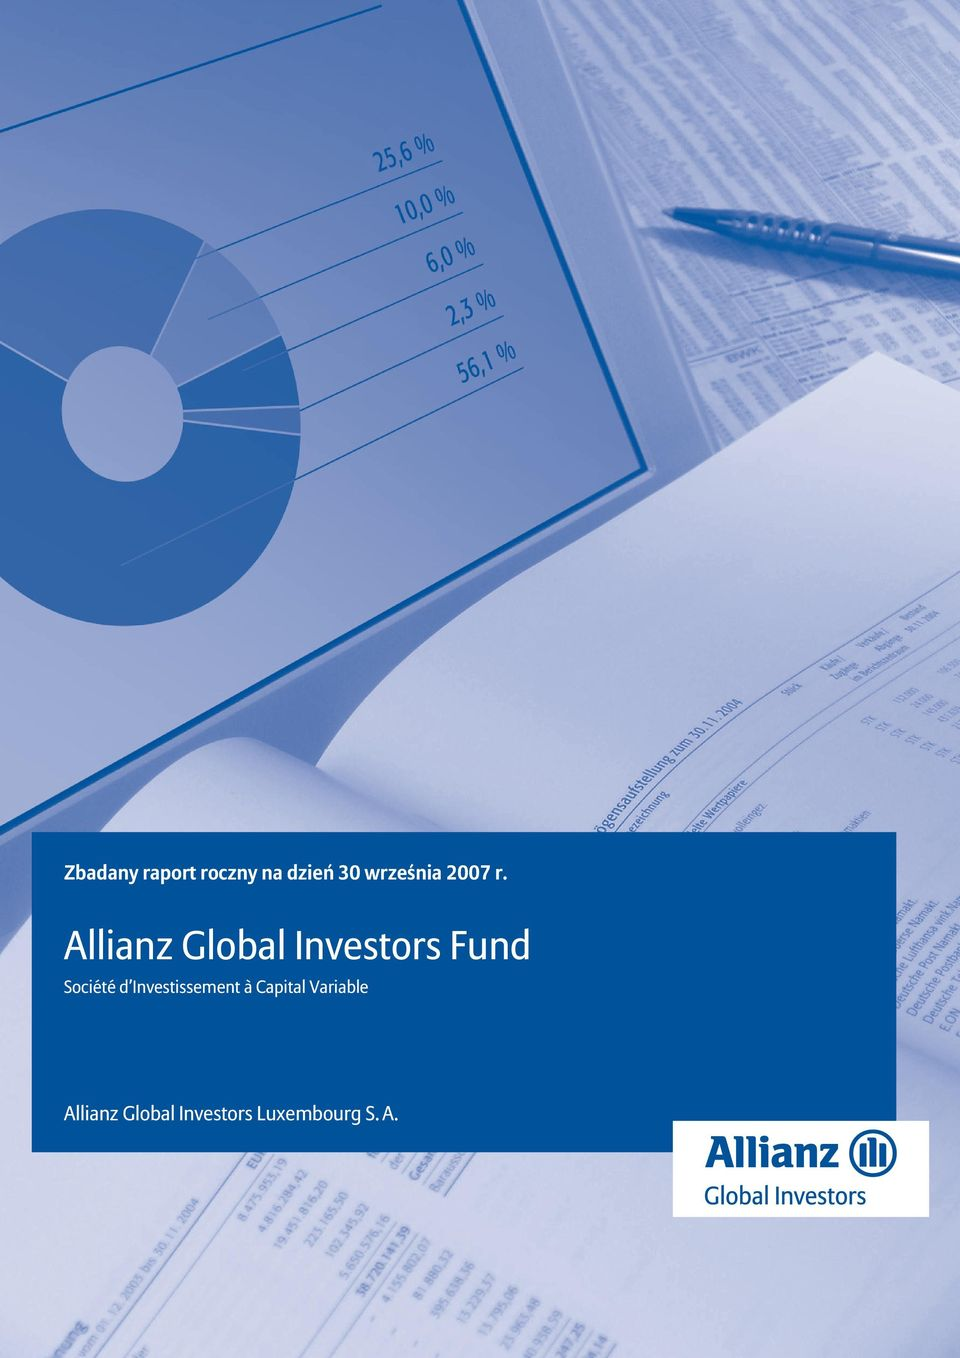 Allianz Global Investors Fund Société d